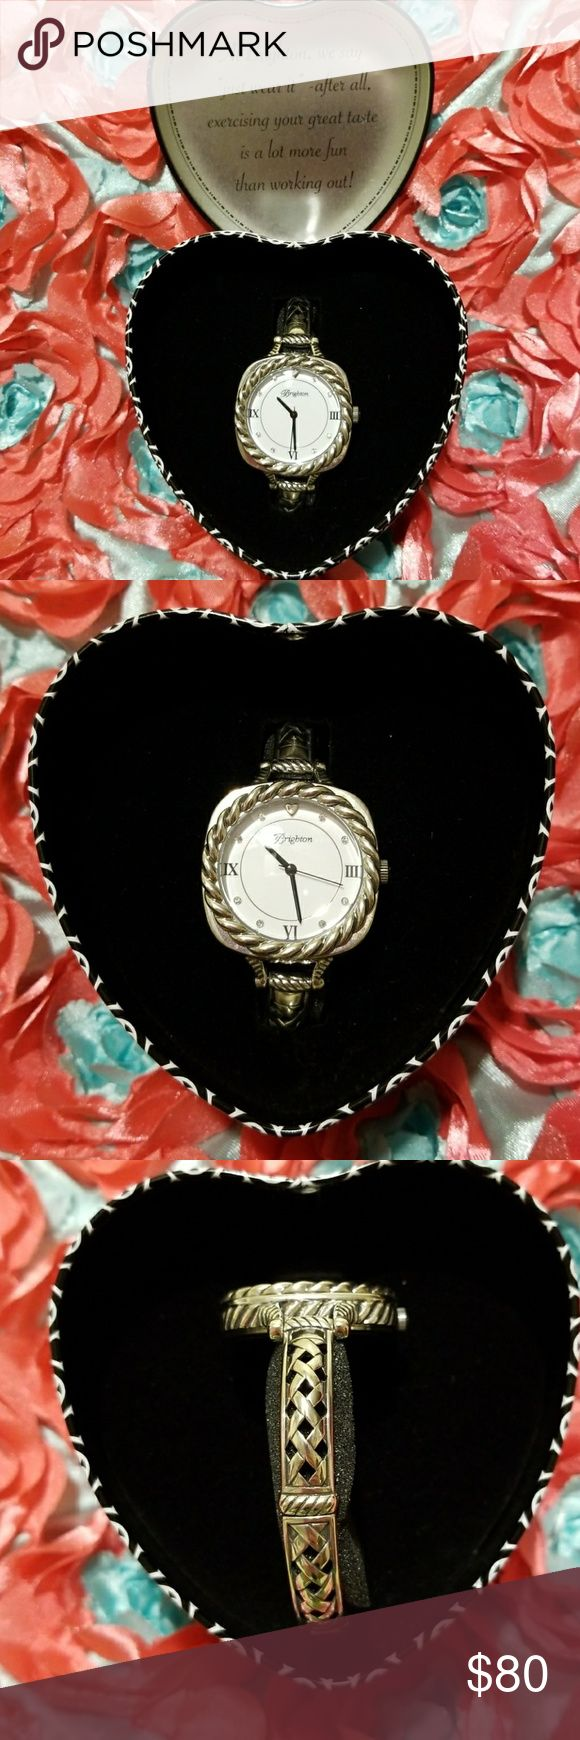 Women's Brighton Como Watch Size: OS Women's Como watch Battery operated  Two size choices when securing the clasp from making the watch feel loose or tight. One owner watch I have not had any problems with this watch and it has kept perfect time. Roman numeral is substituted for #'s 3,6, & 9 A heart shape is substituted for the # 12. Diamomd Crystals are substituted for #'s 1,2,4,5,7,8,10, & 11. I do not believe they are real diamonds but I could be wrong. Original gift box is included…